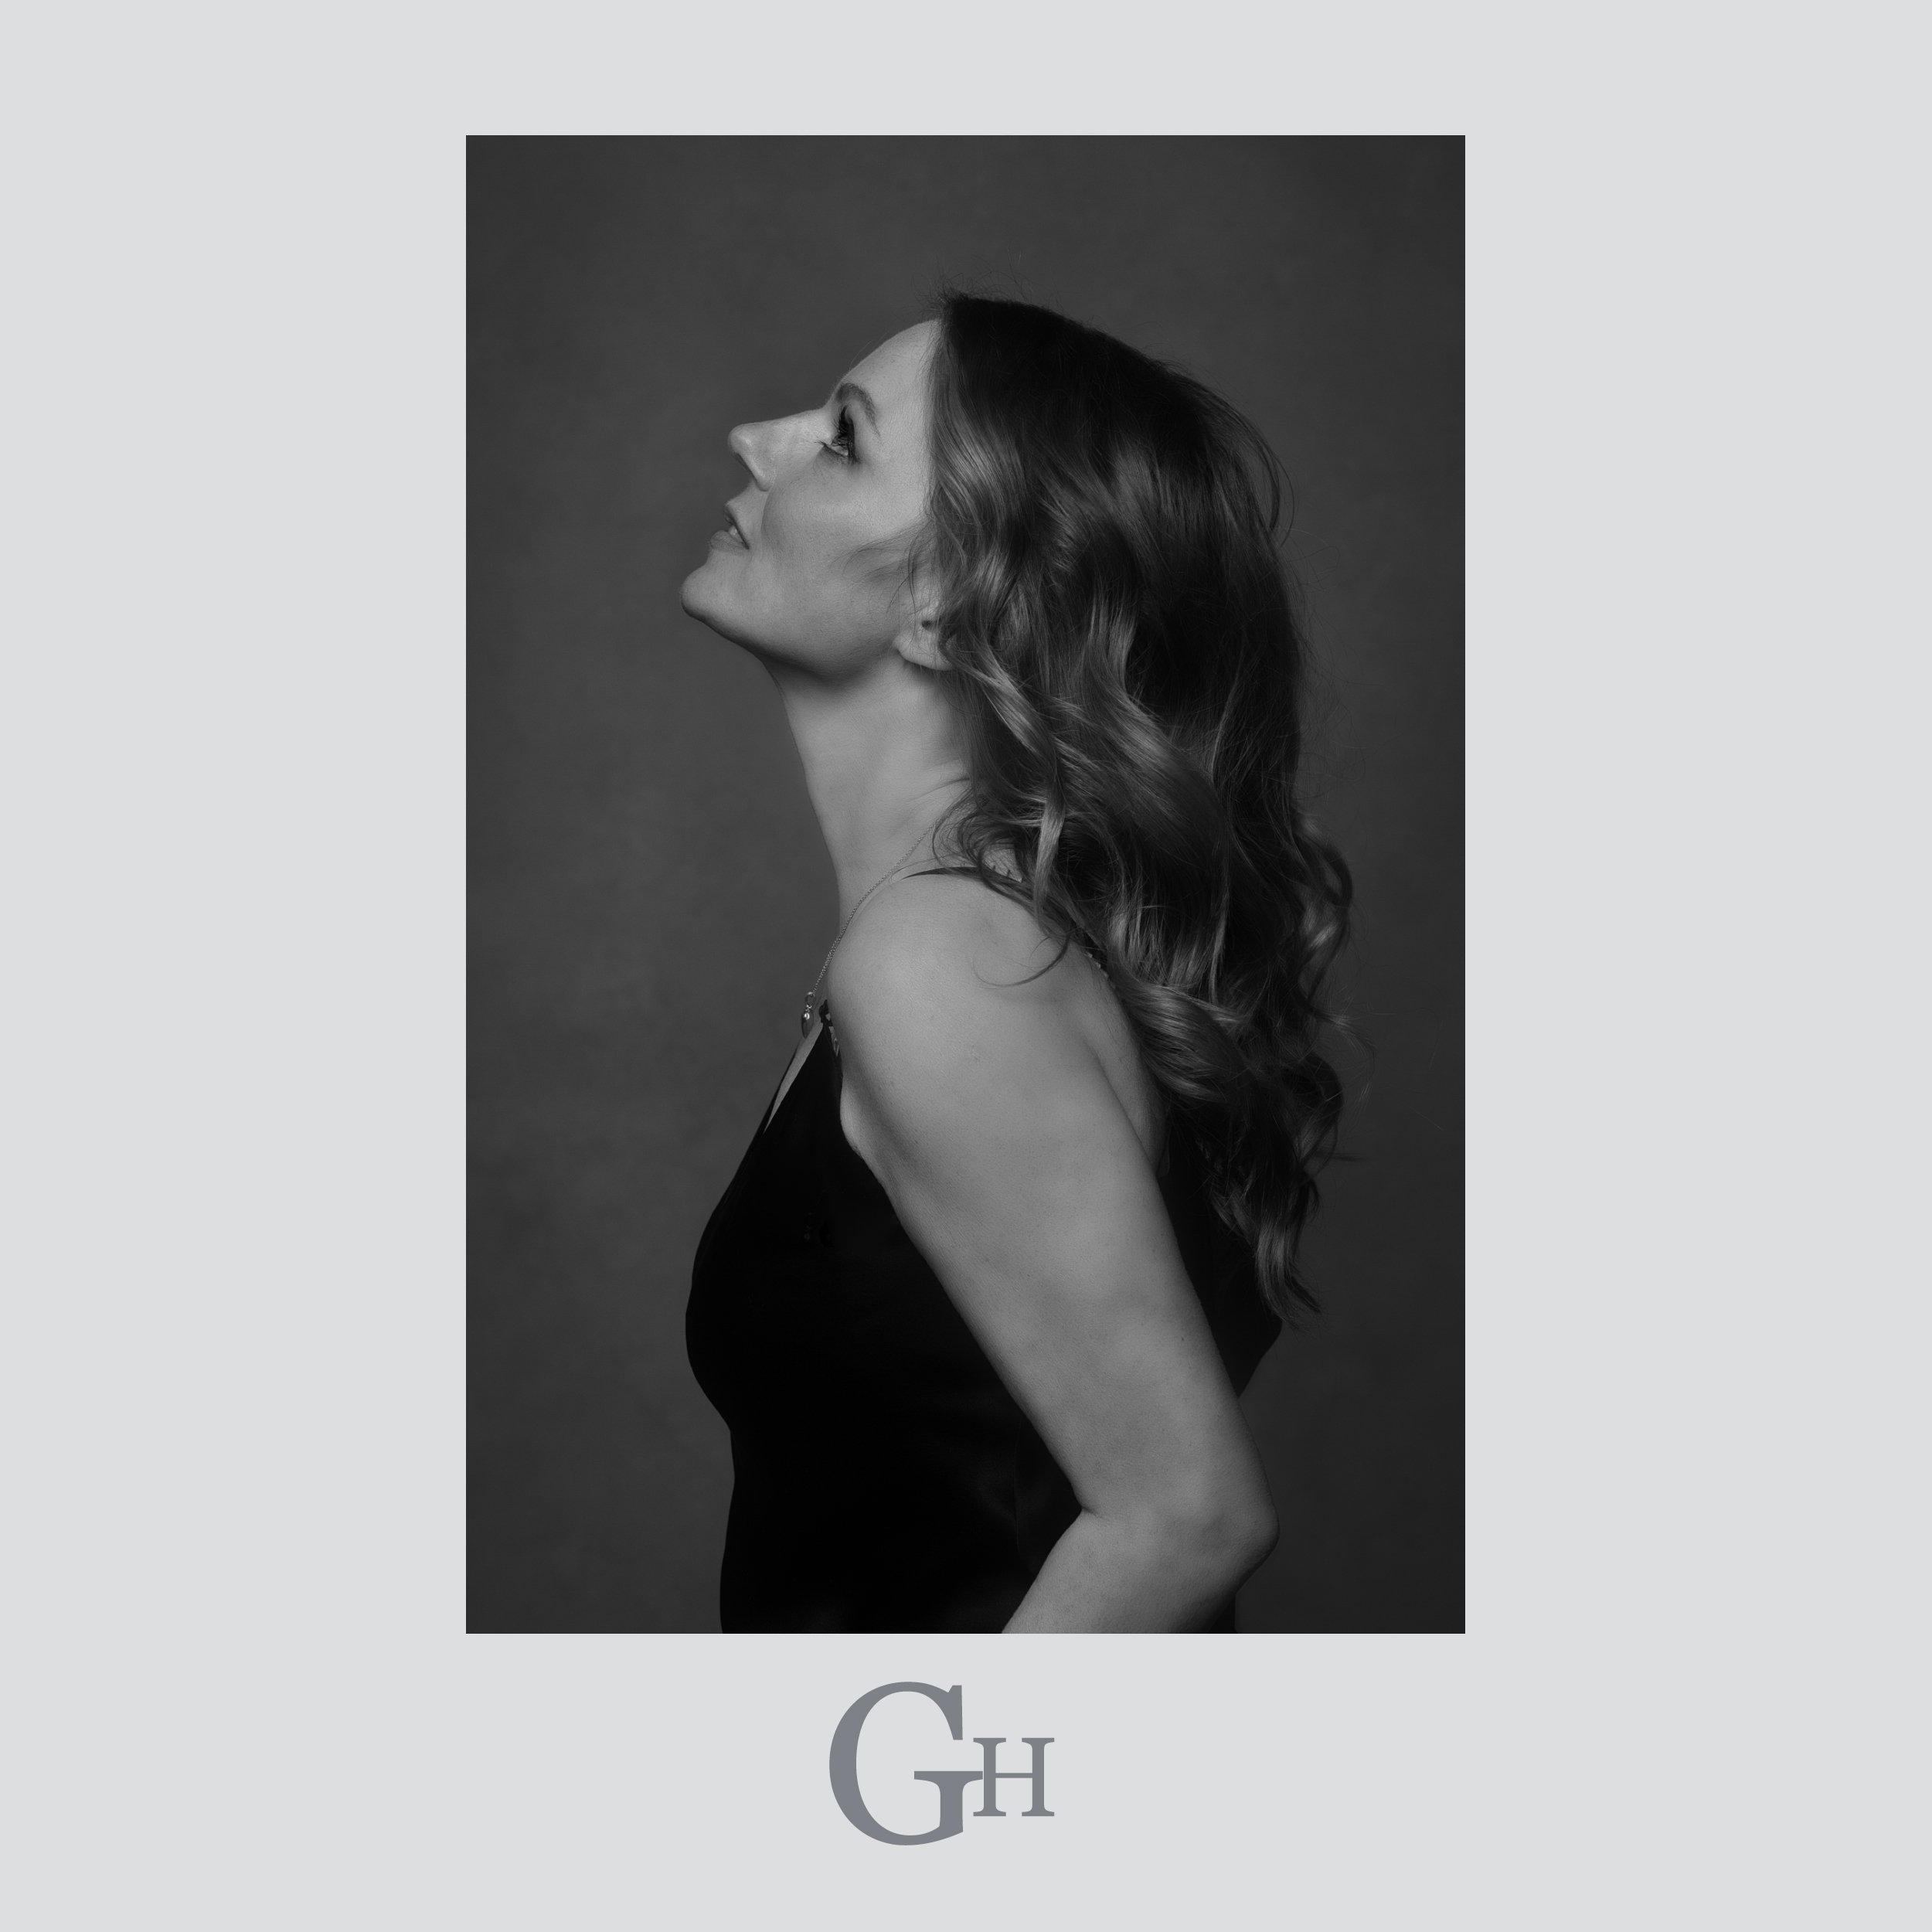 Geri Horner releasing charity single in memory of George Michael